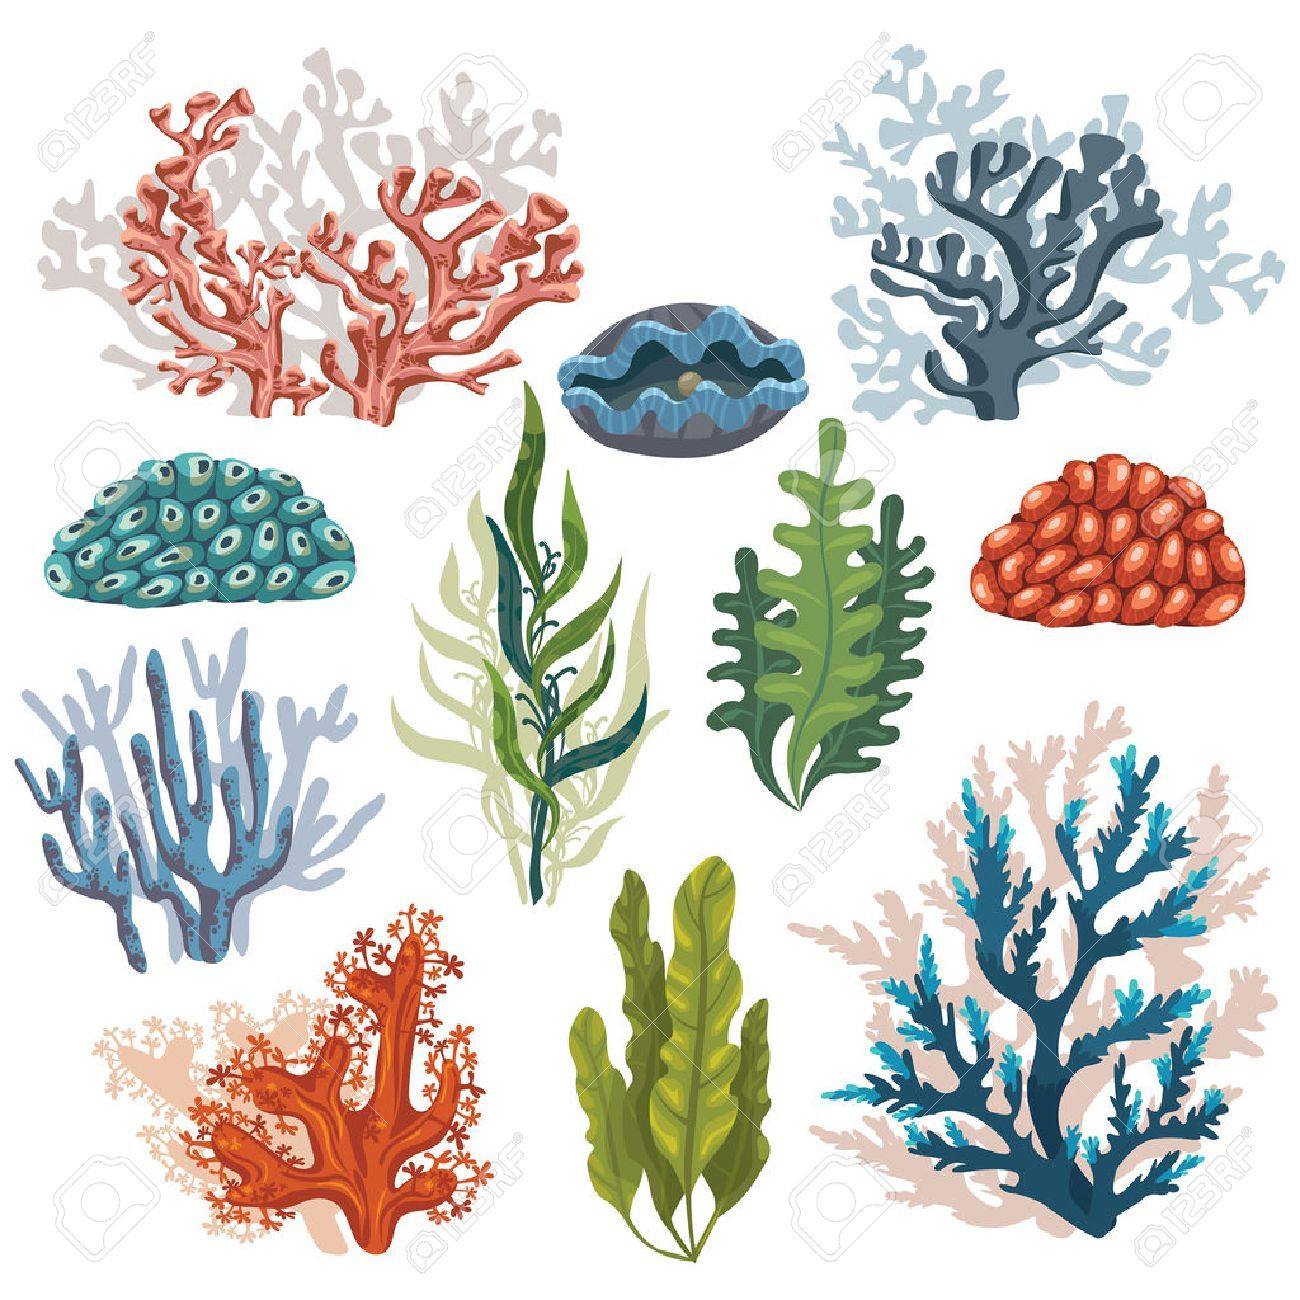 Set Of Cartoon Underwater Plants And Creatures Vector Isolated Corals And Algaes Arte De Medusas Arte Subacuatico Dibujos